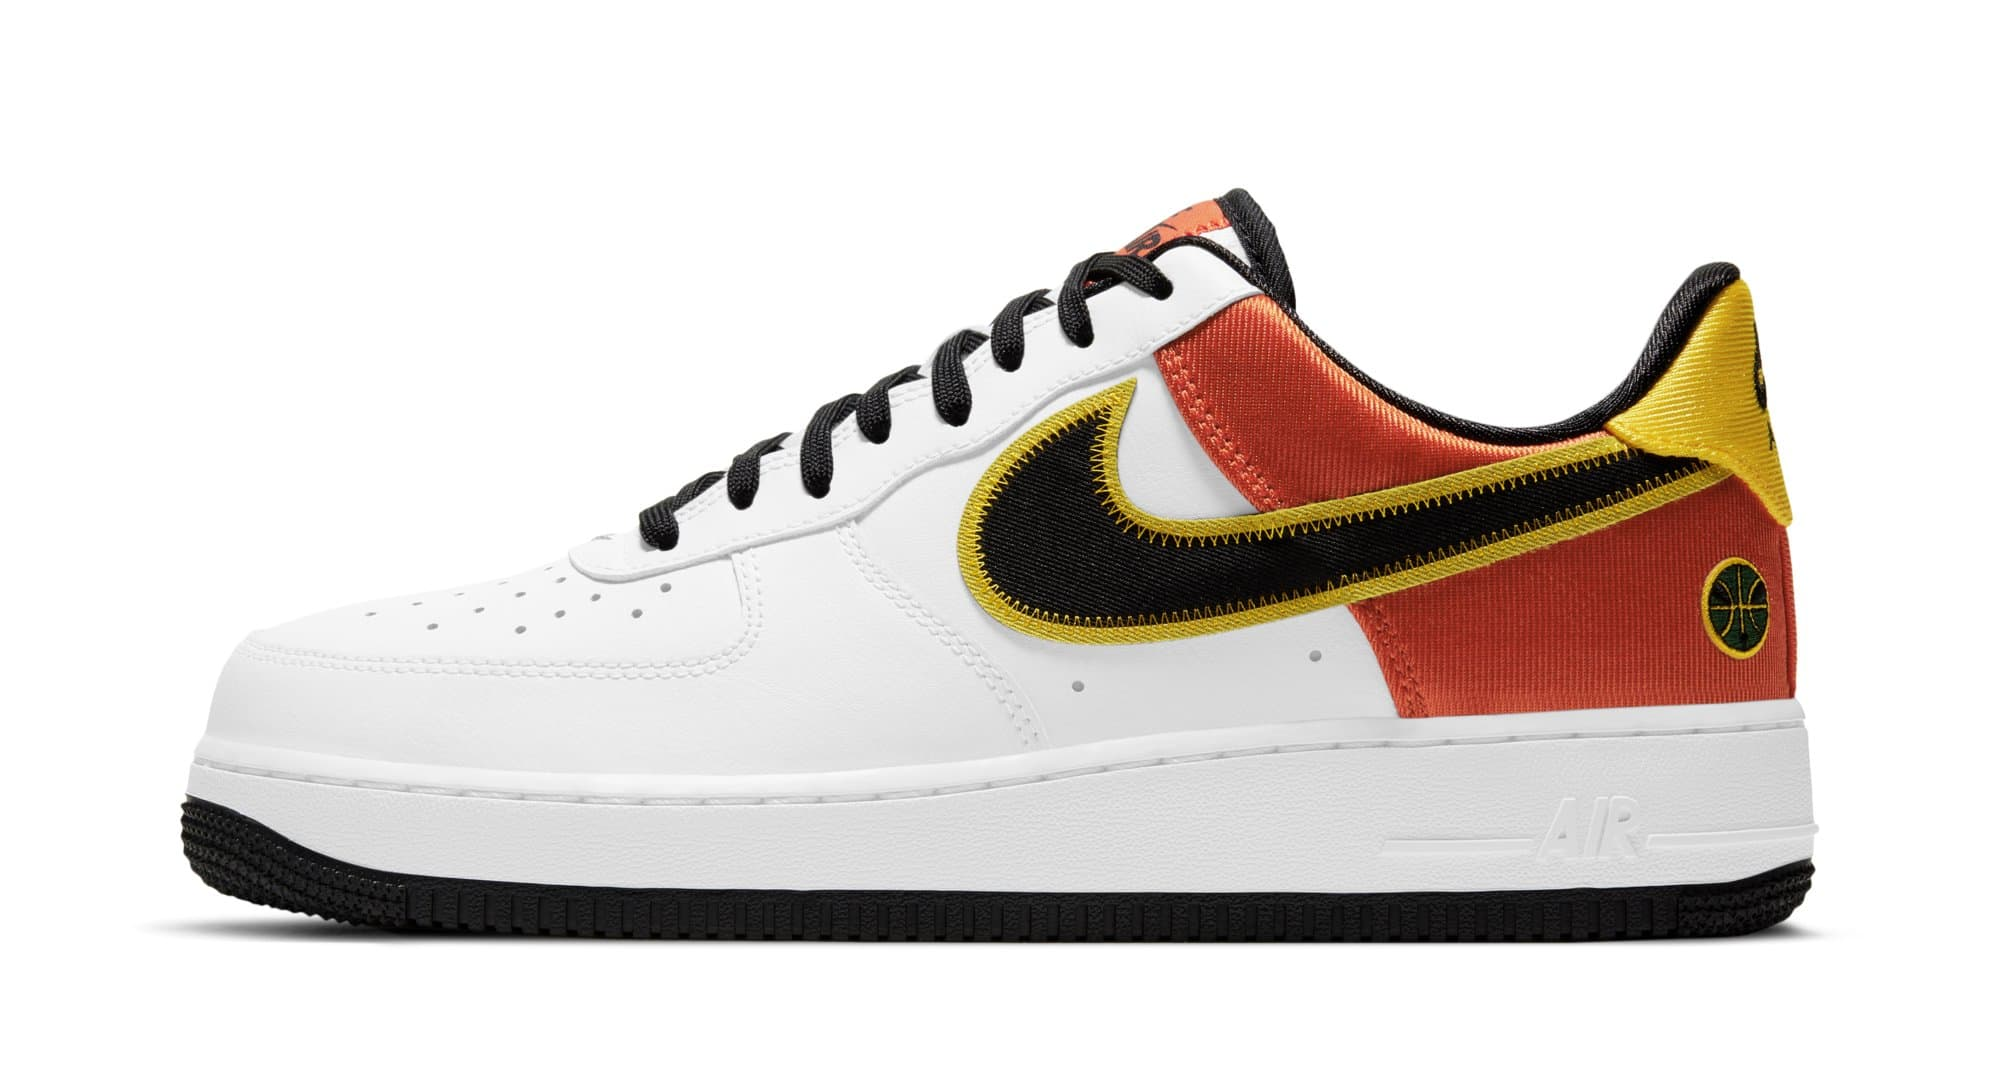 Nike Air Force 1 Low 'Raygun' CU8070-100 (Lateral)